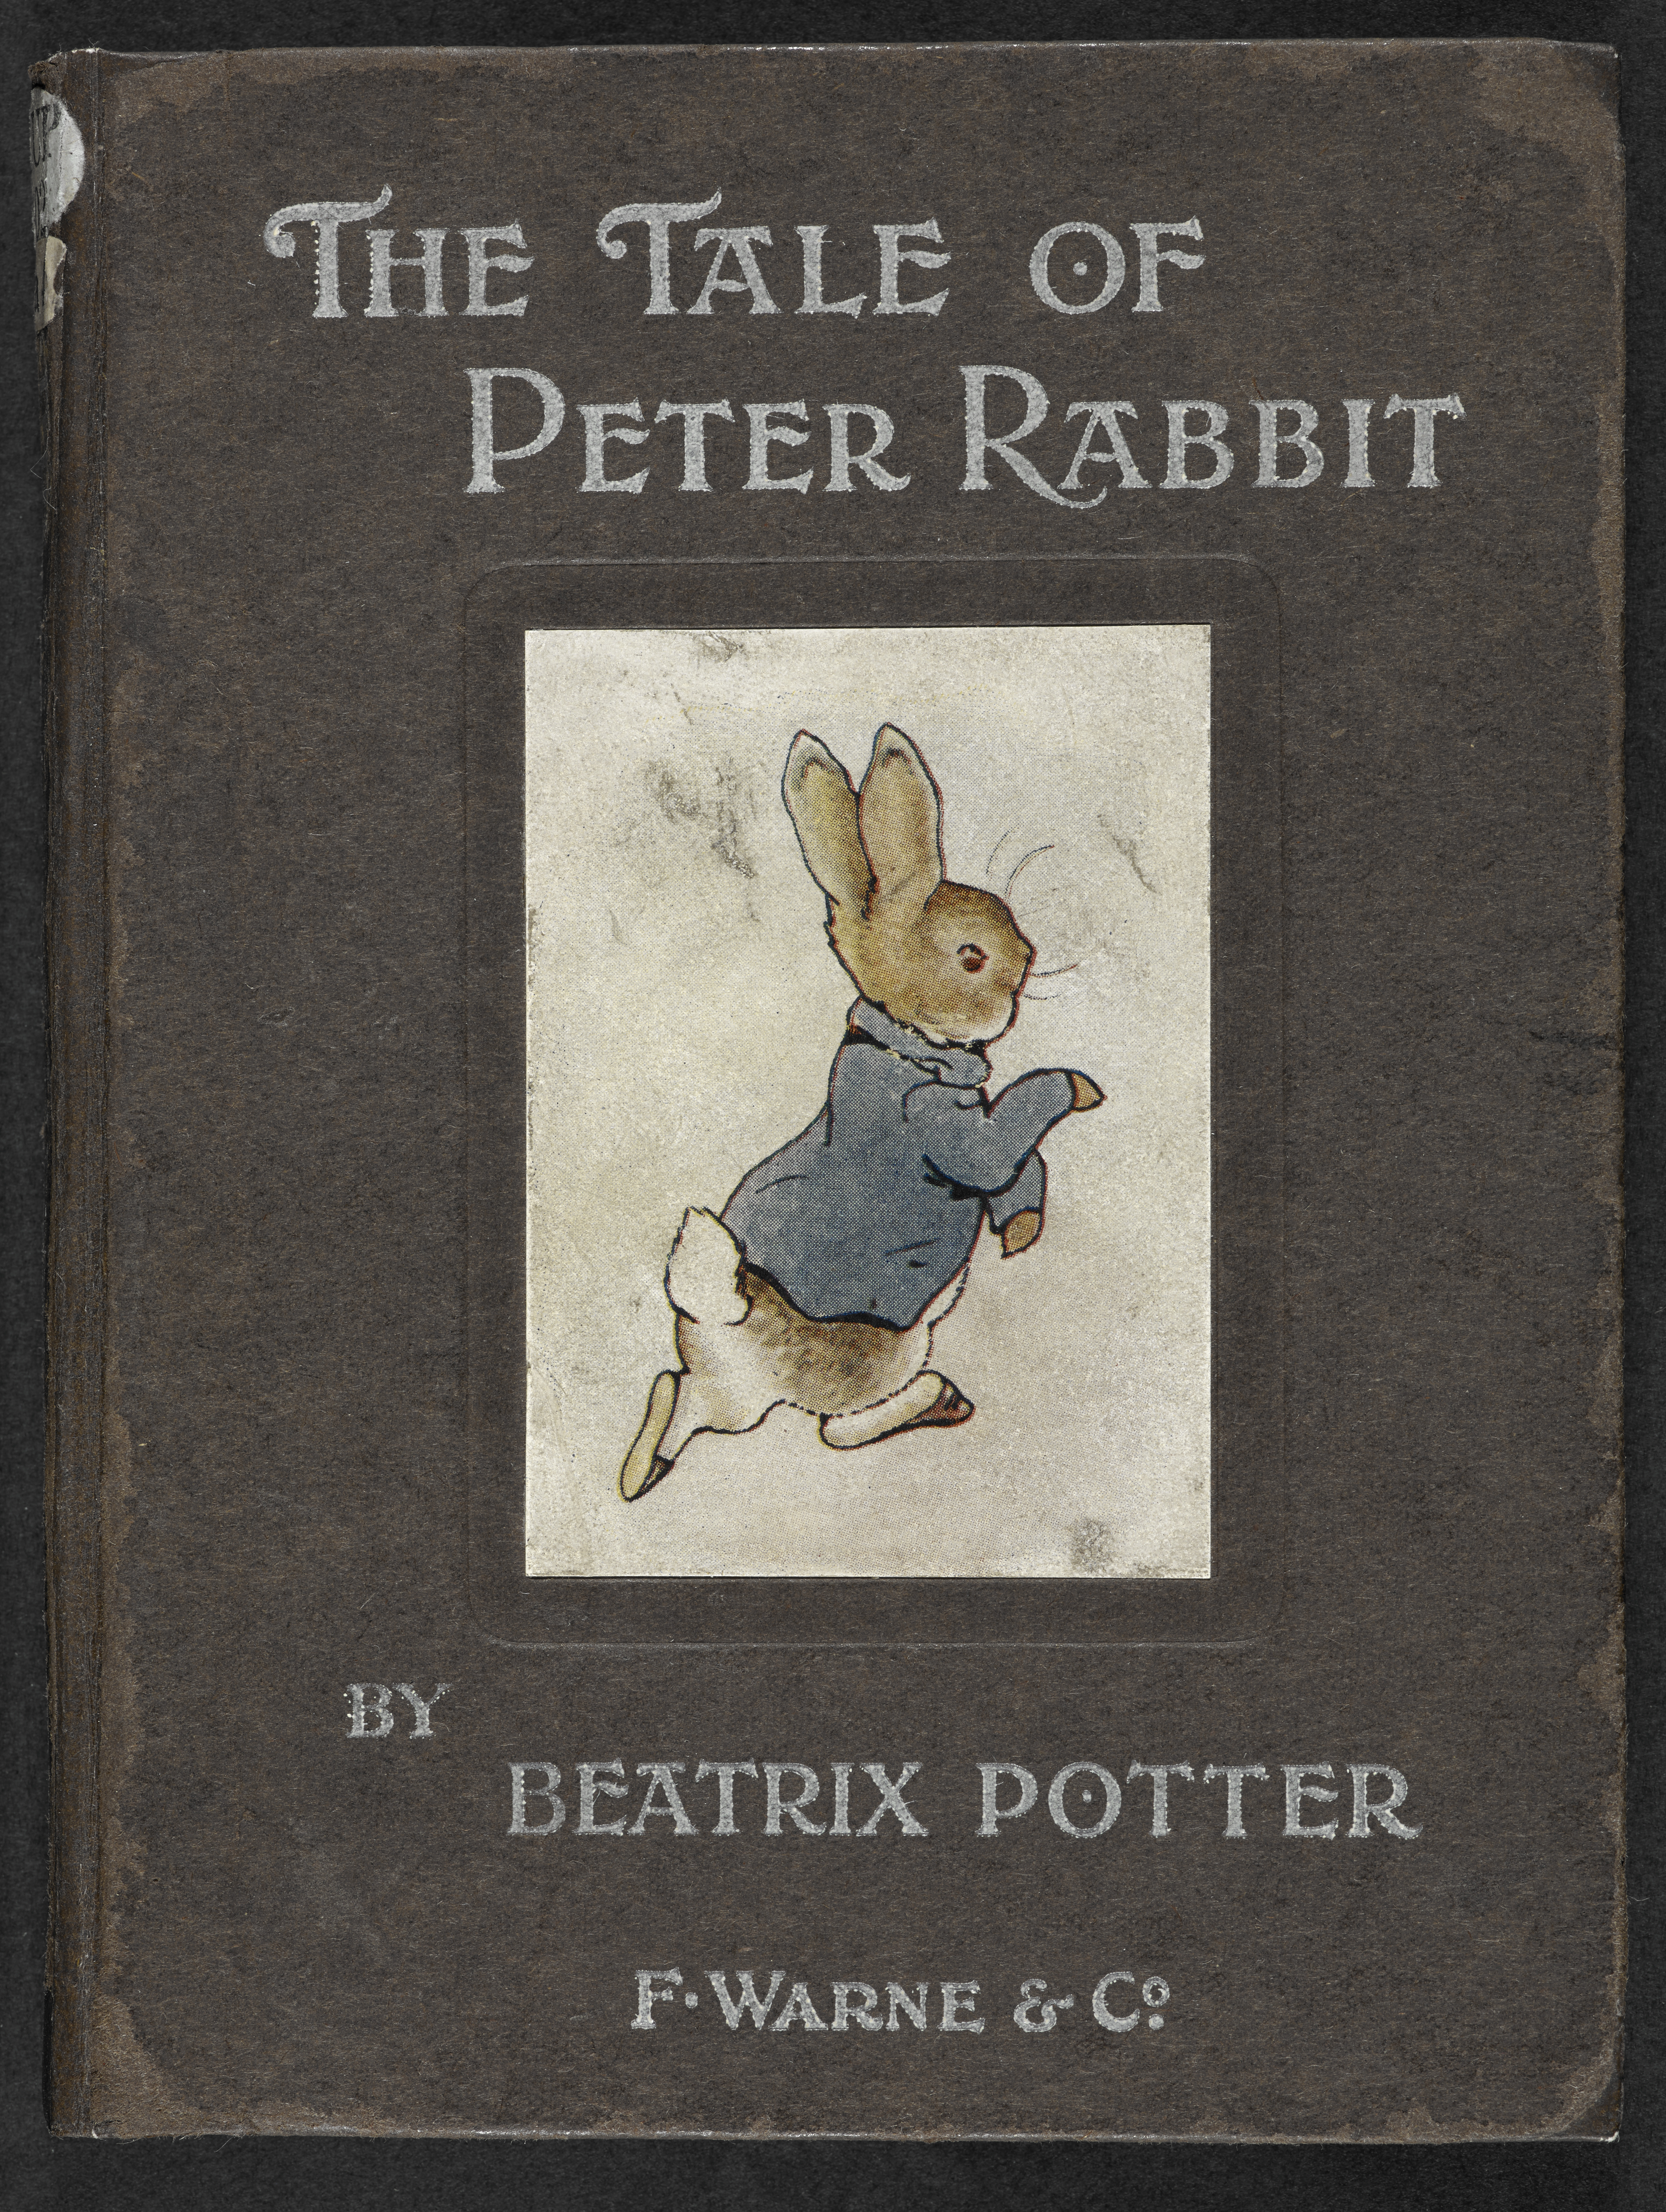 Front cover of The Tale of Peter Rabbit book, showing Peter walking upright on his back legs and wearing a blue coat.